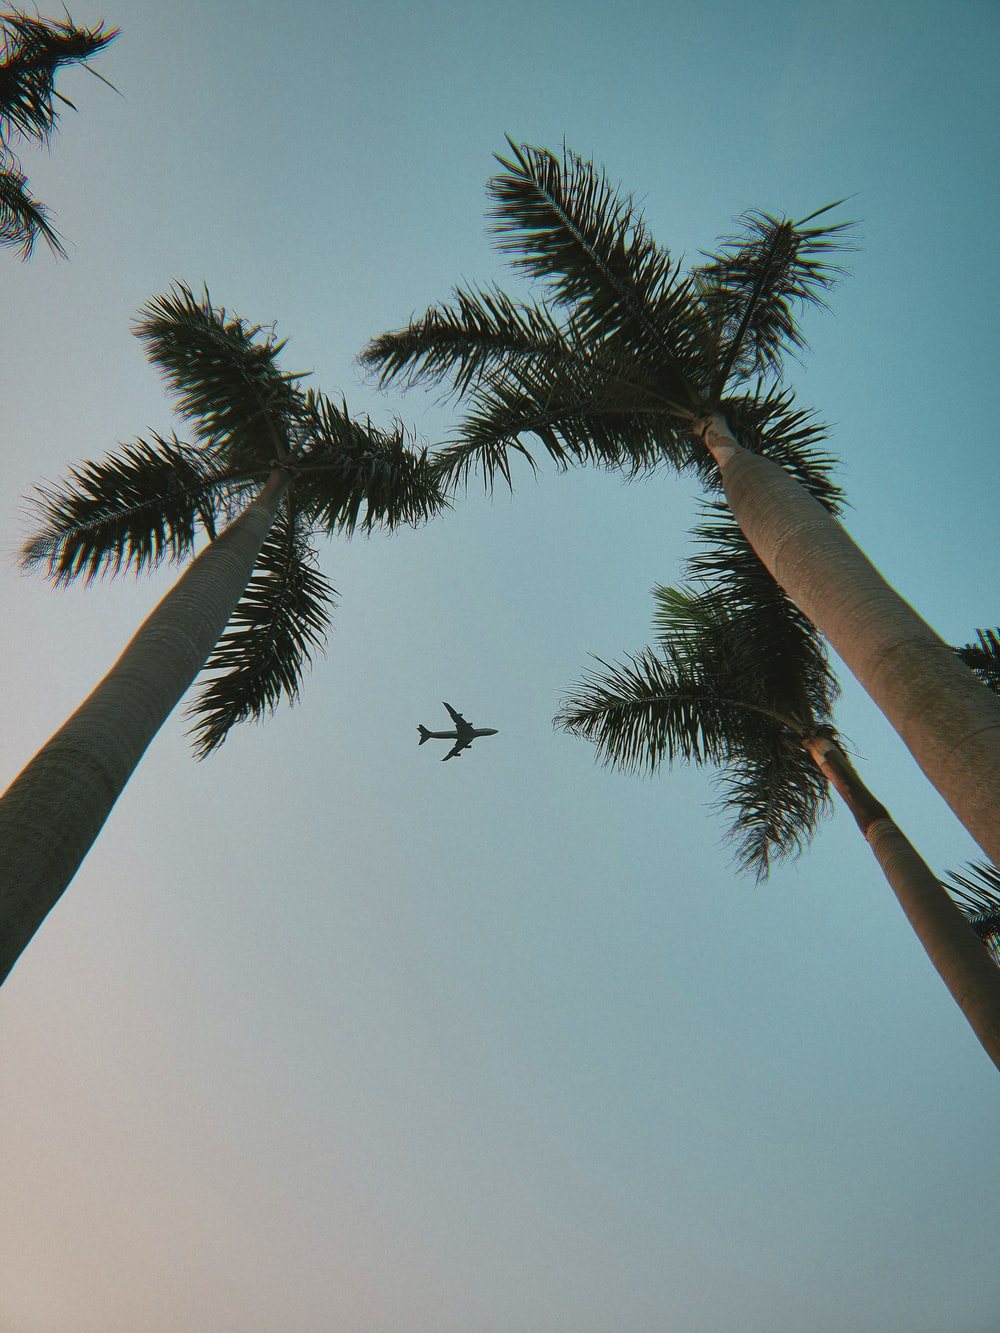 black bird flying over palm tree during daytime